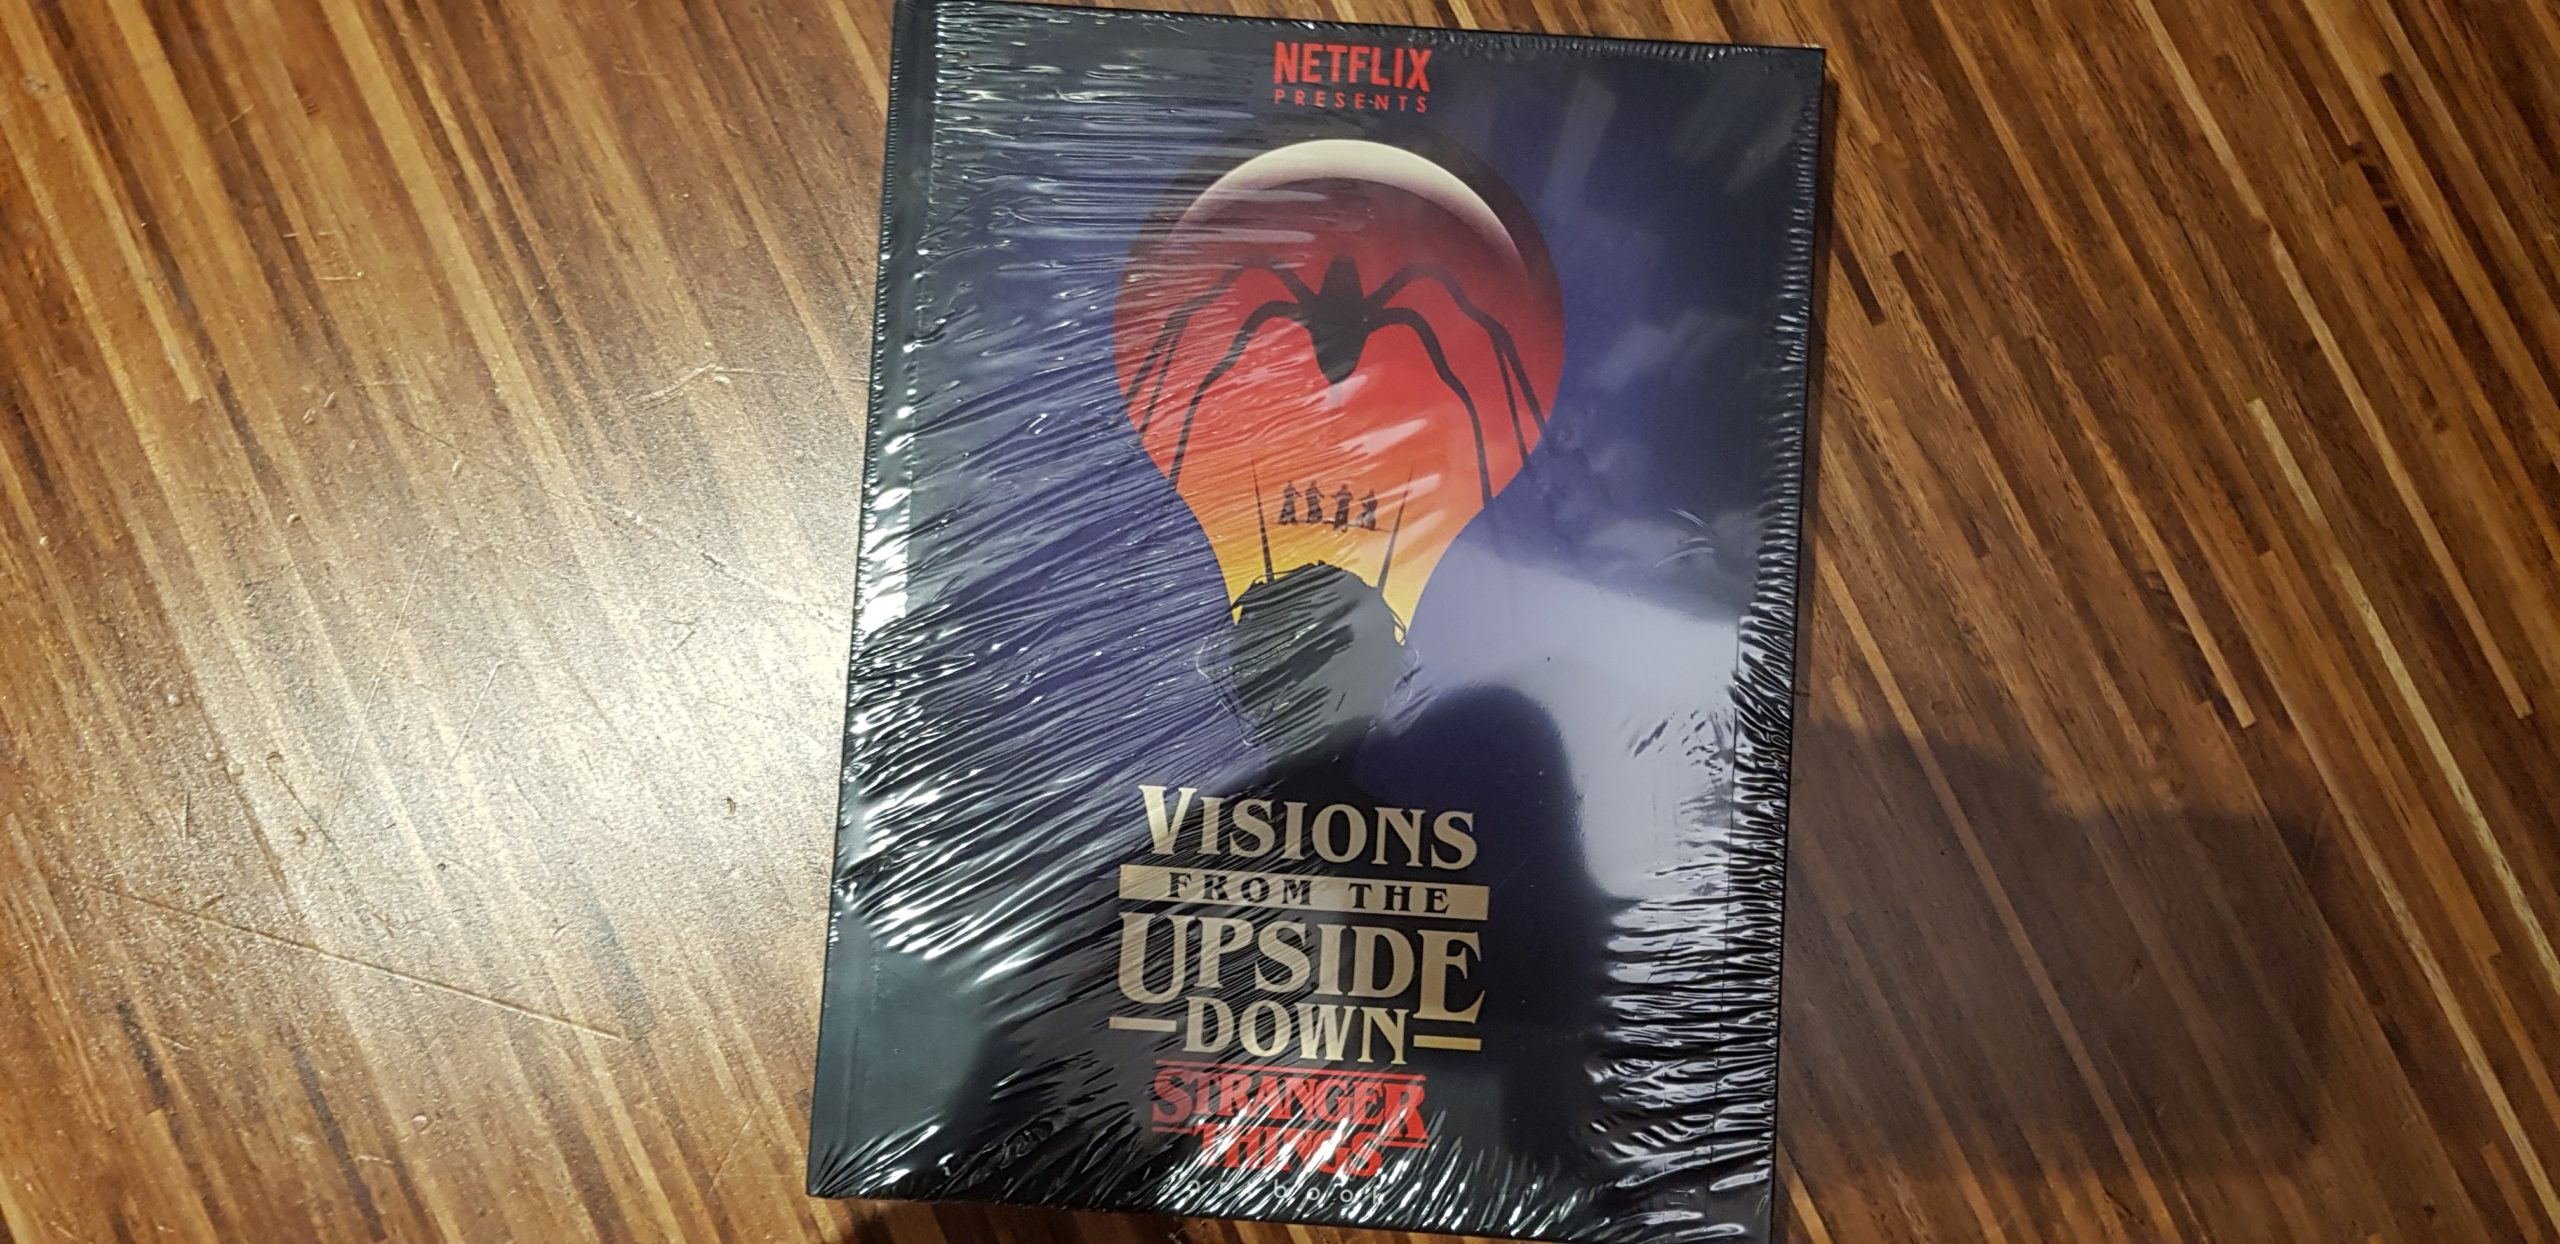 Stranger things book inspiration for industrial product design sketching